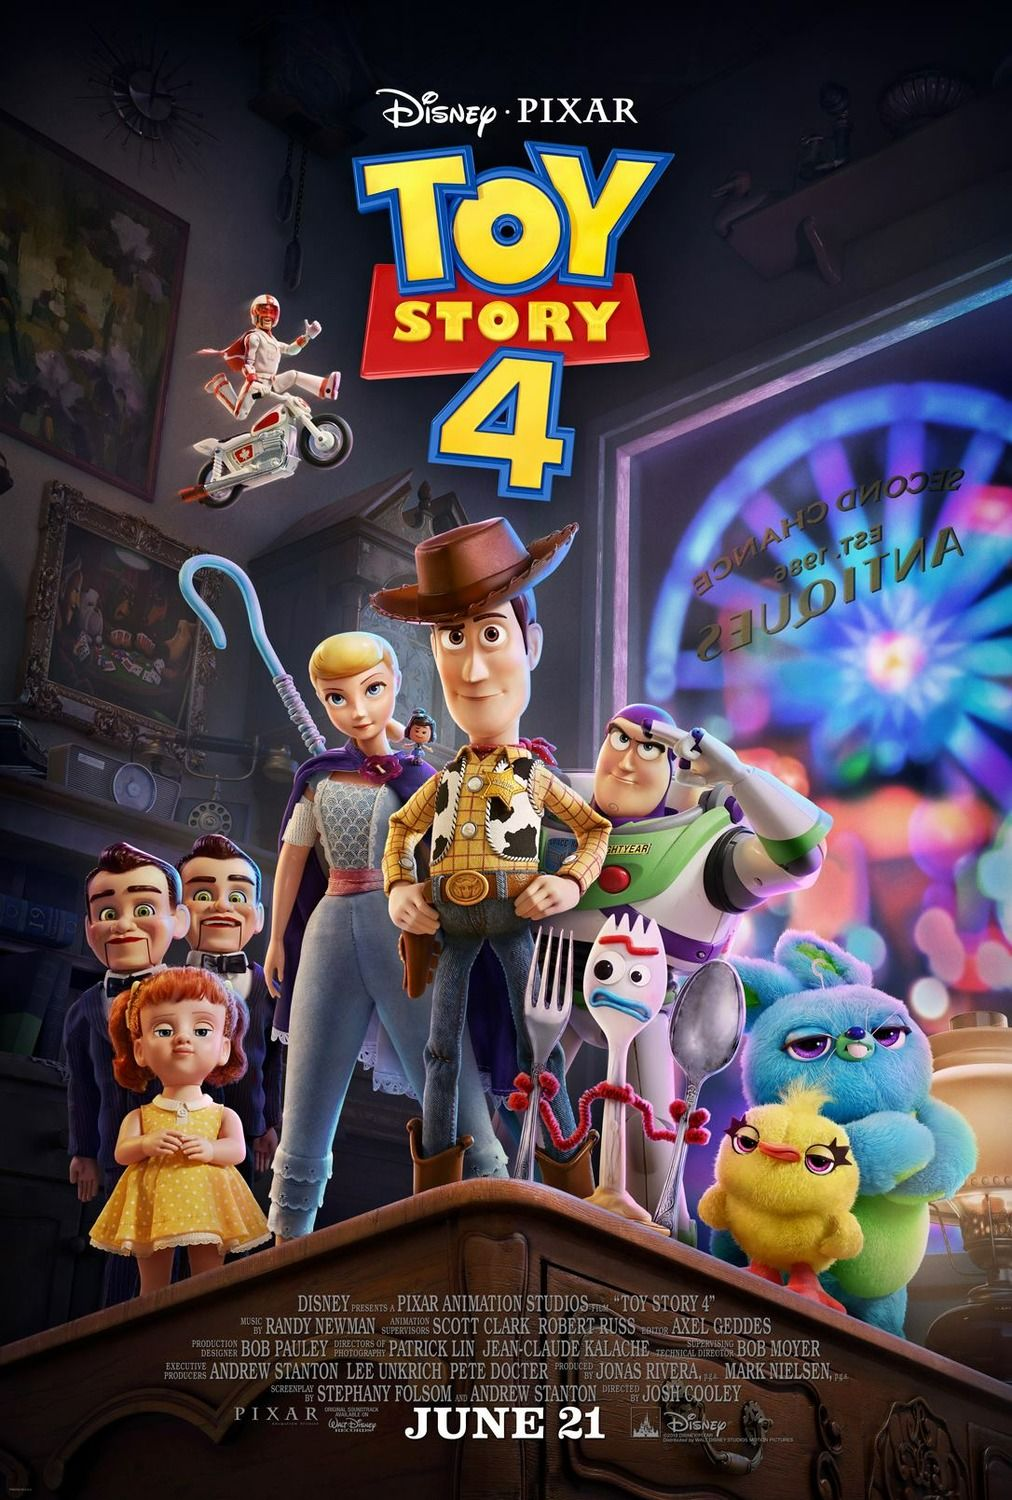 Toy Story 4 (Photo: Pixar/Disney)